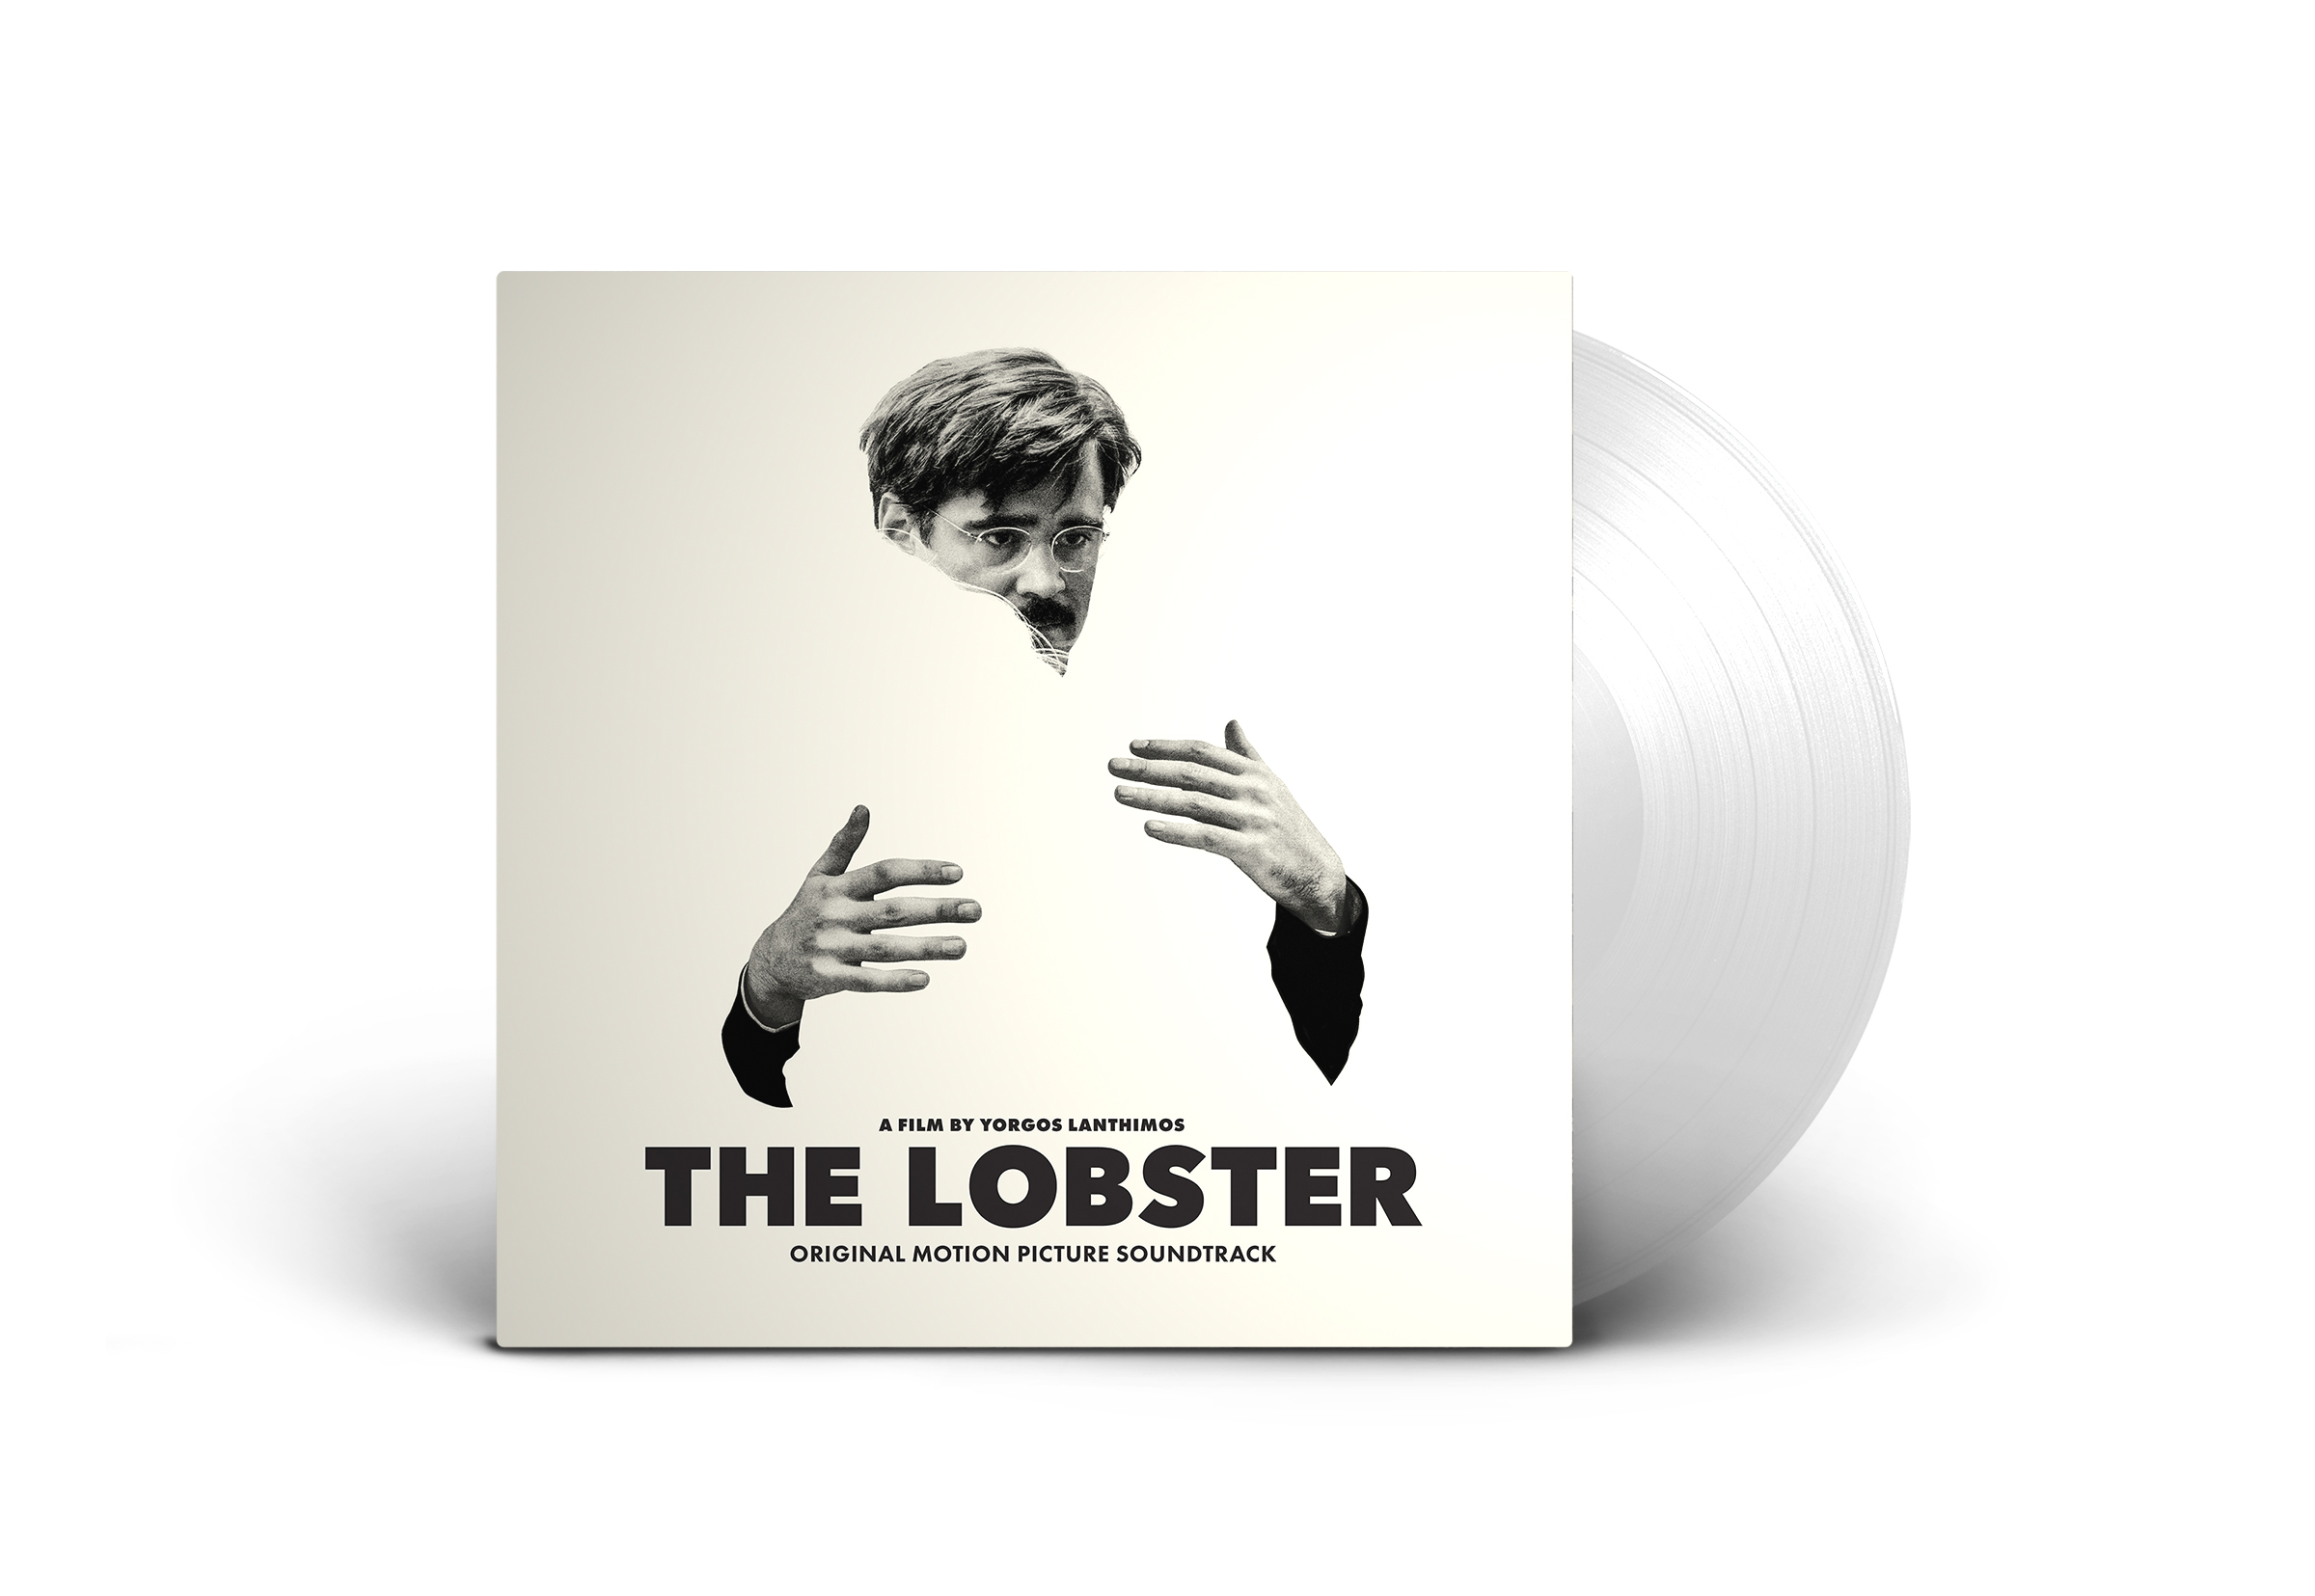 The Lobster - Original Motion Picture Soundtrack